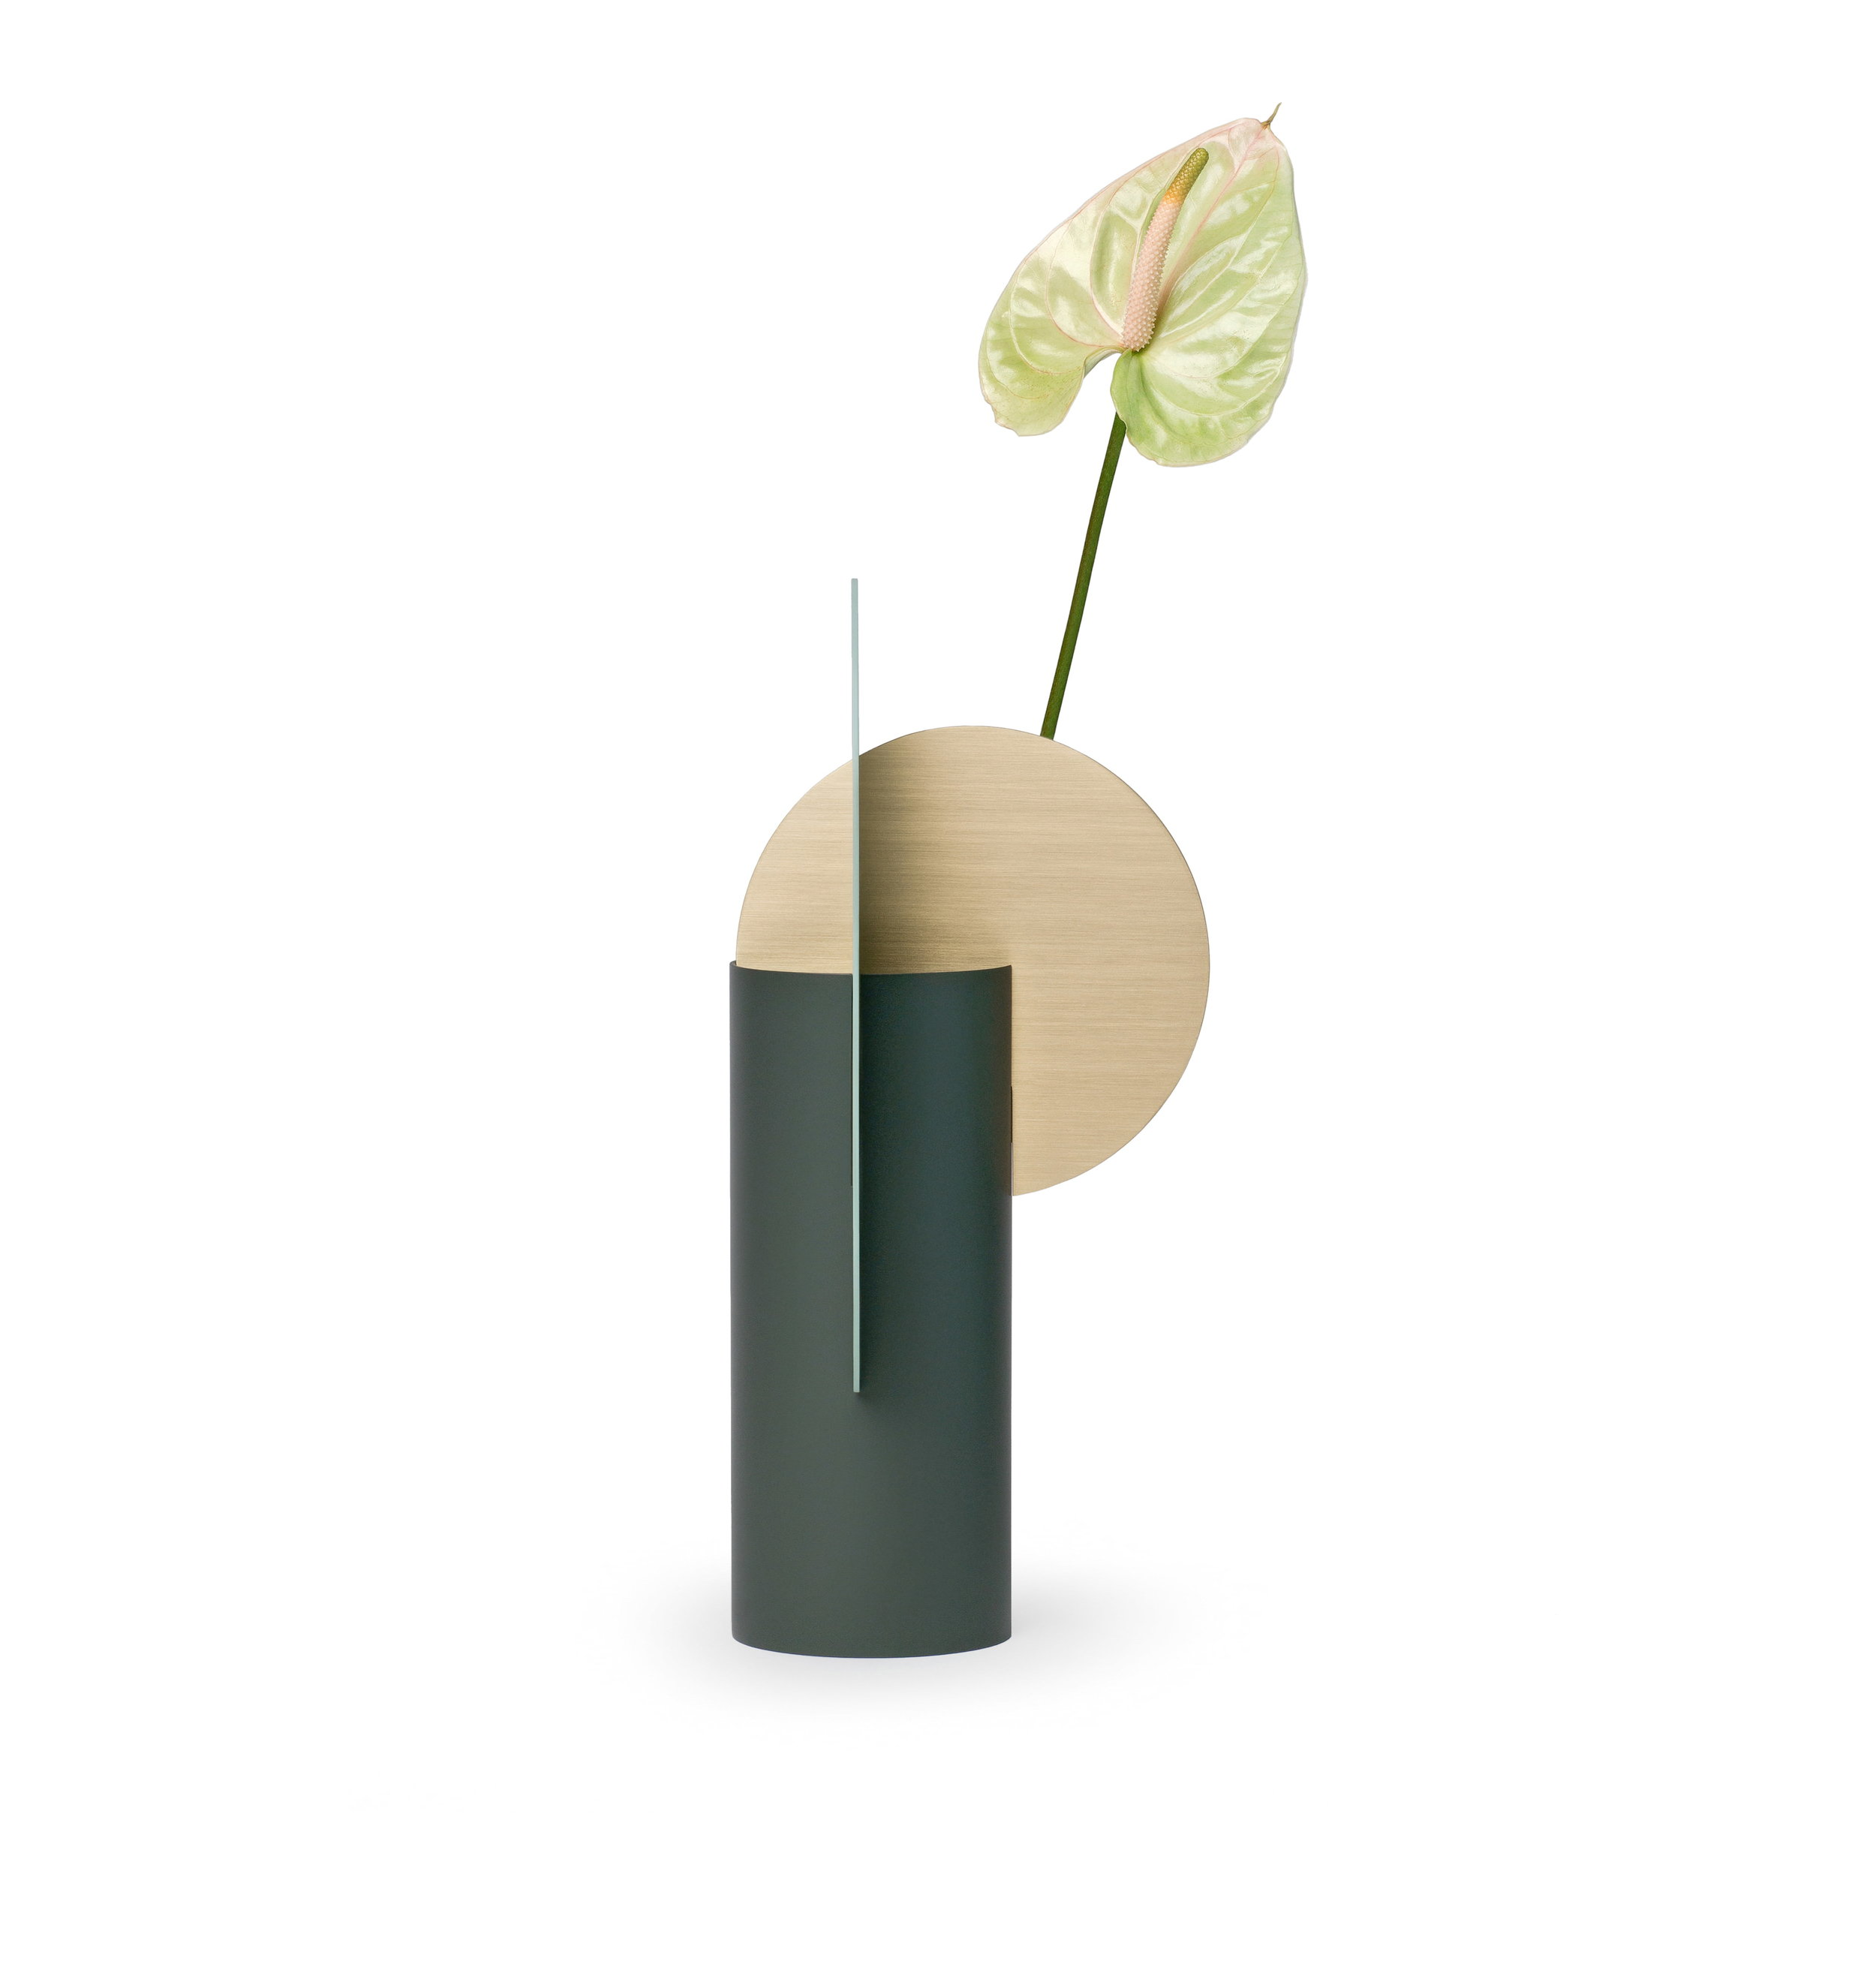 SCULPTURAL - Even an empty vase will always look like a small art object in your house.